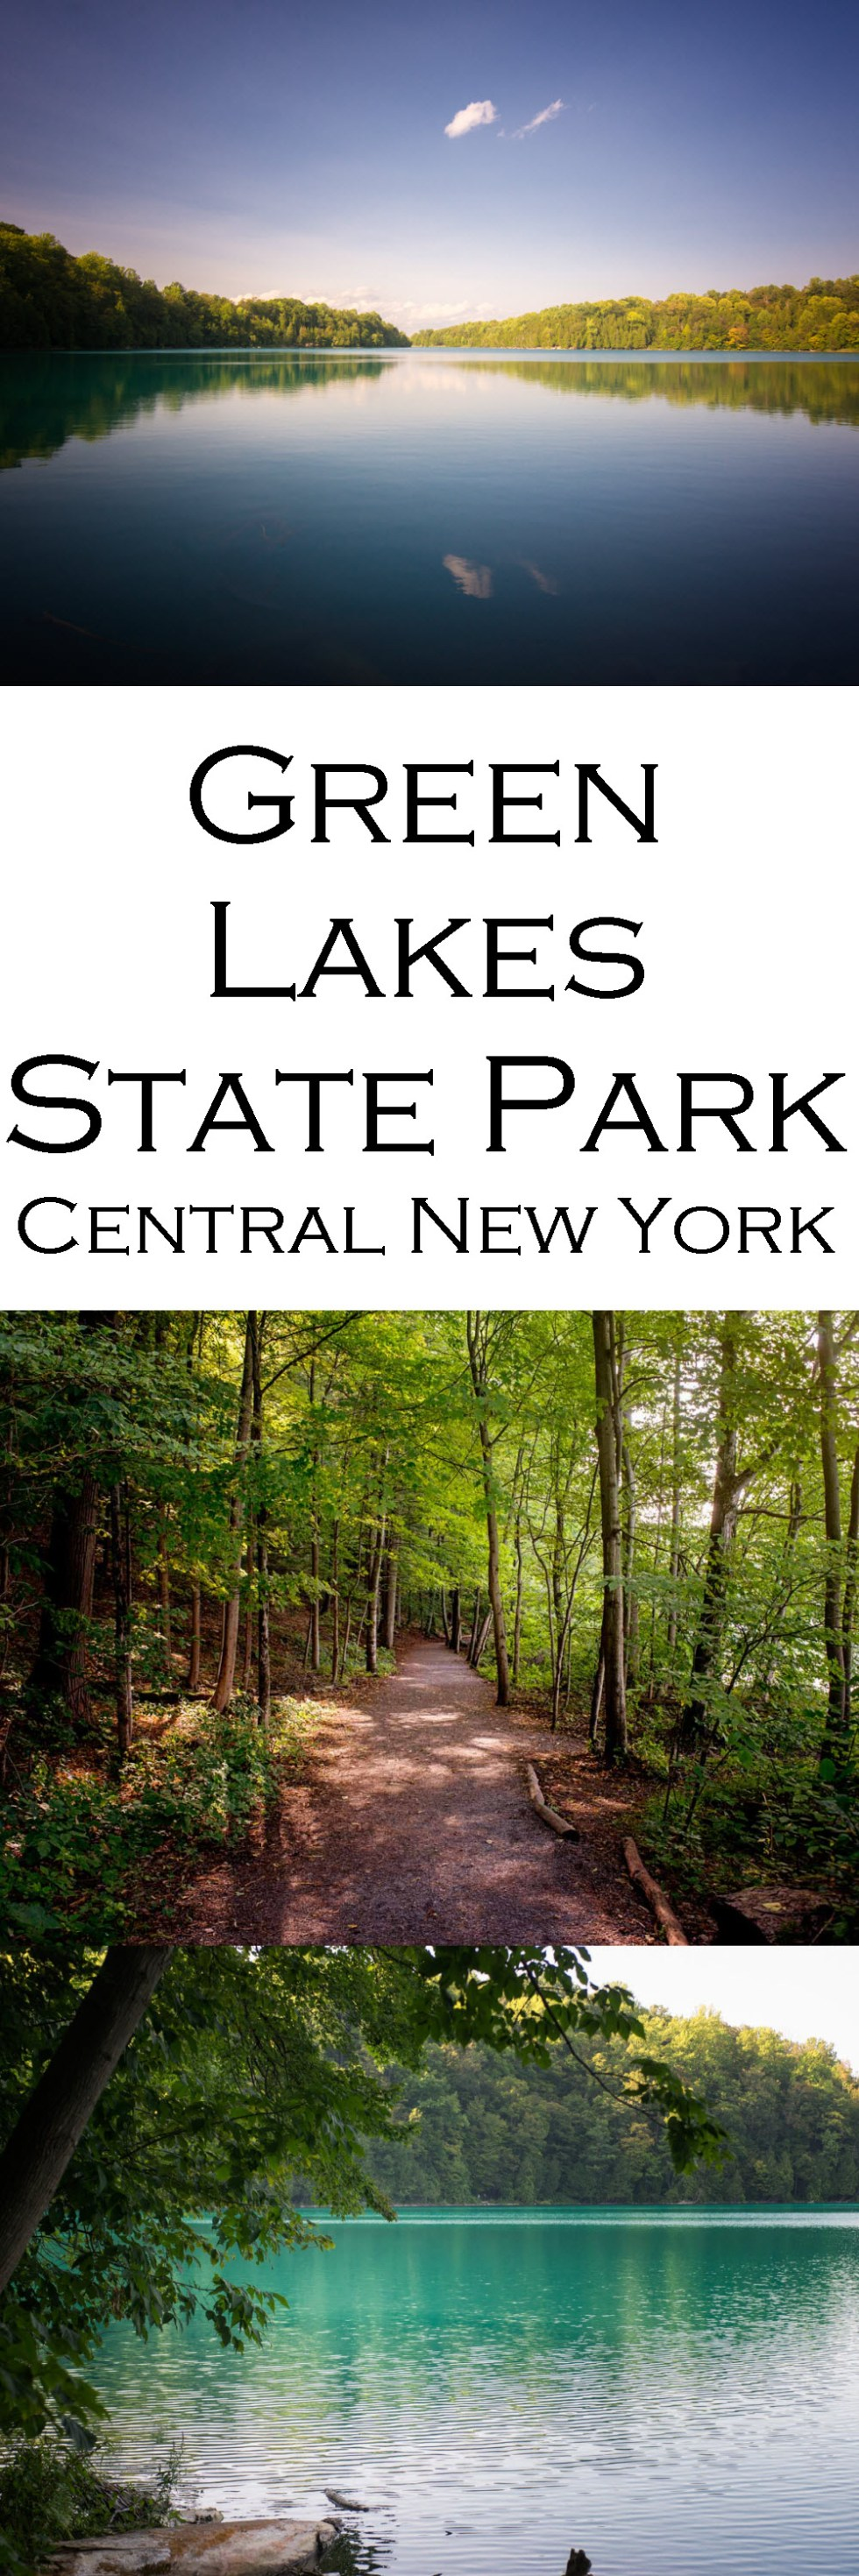 Green Lakes State Park - What to Do in Syracuse, NY Travel Guide